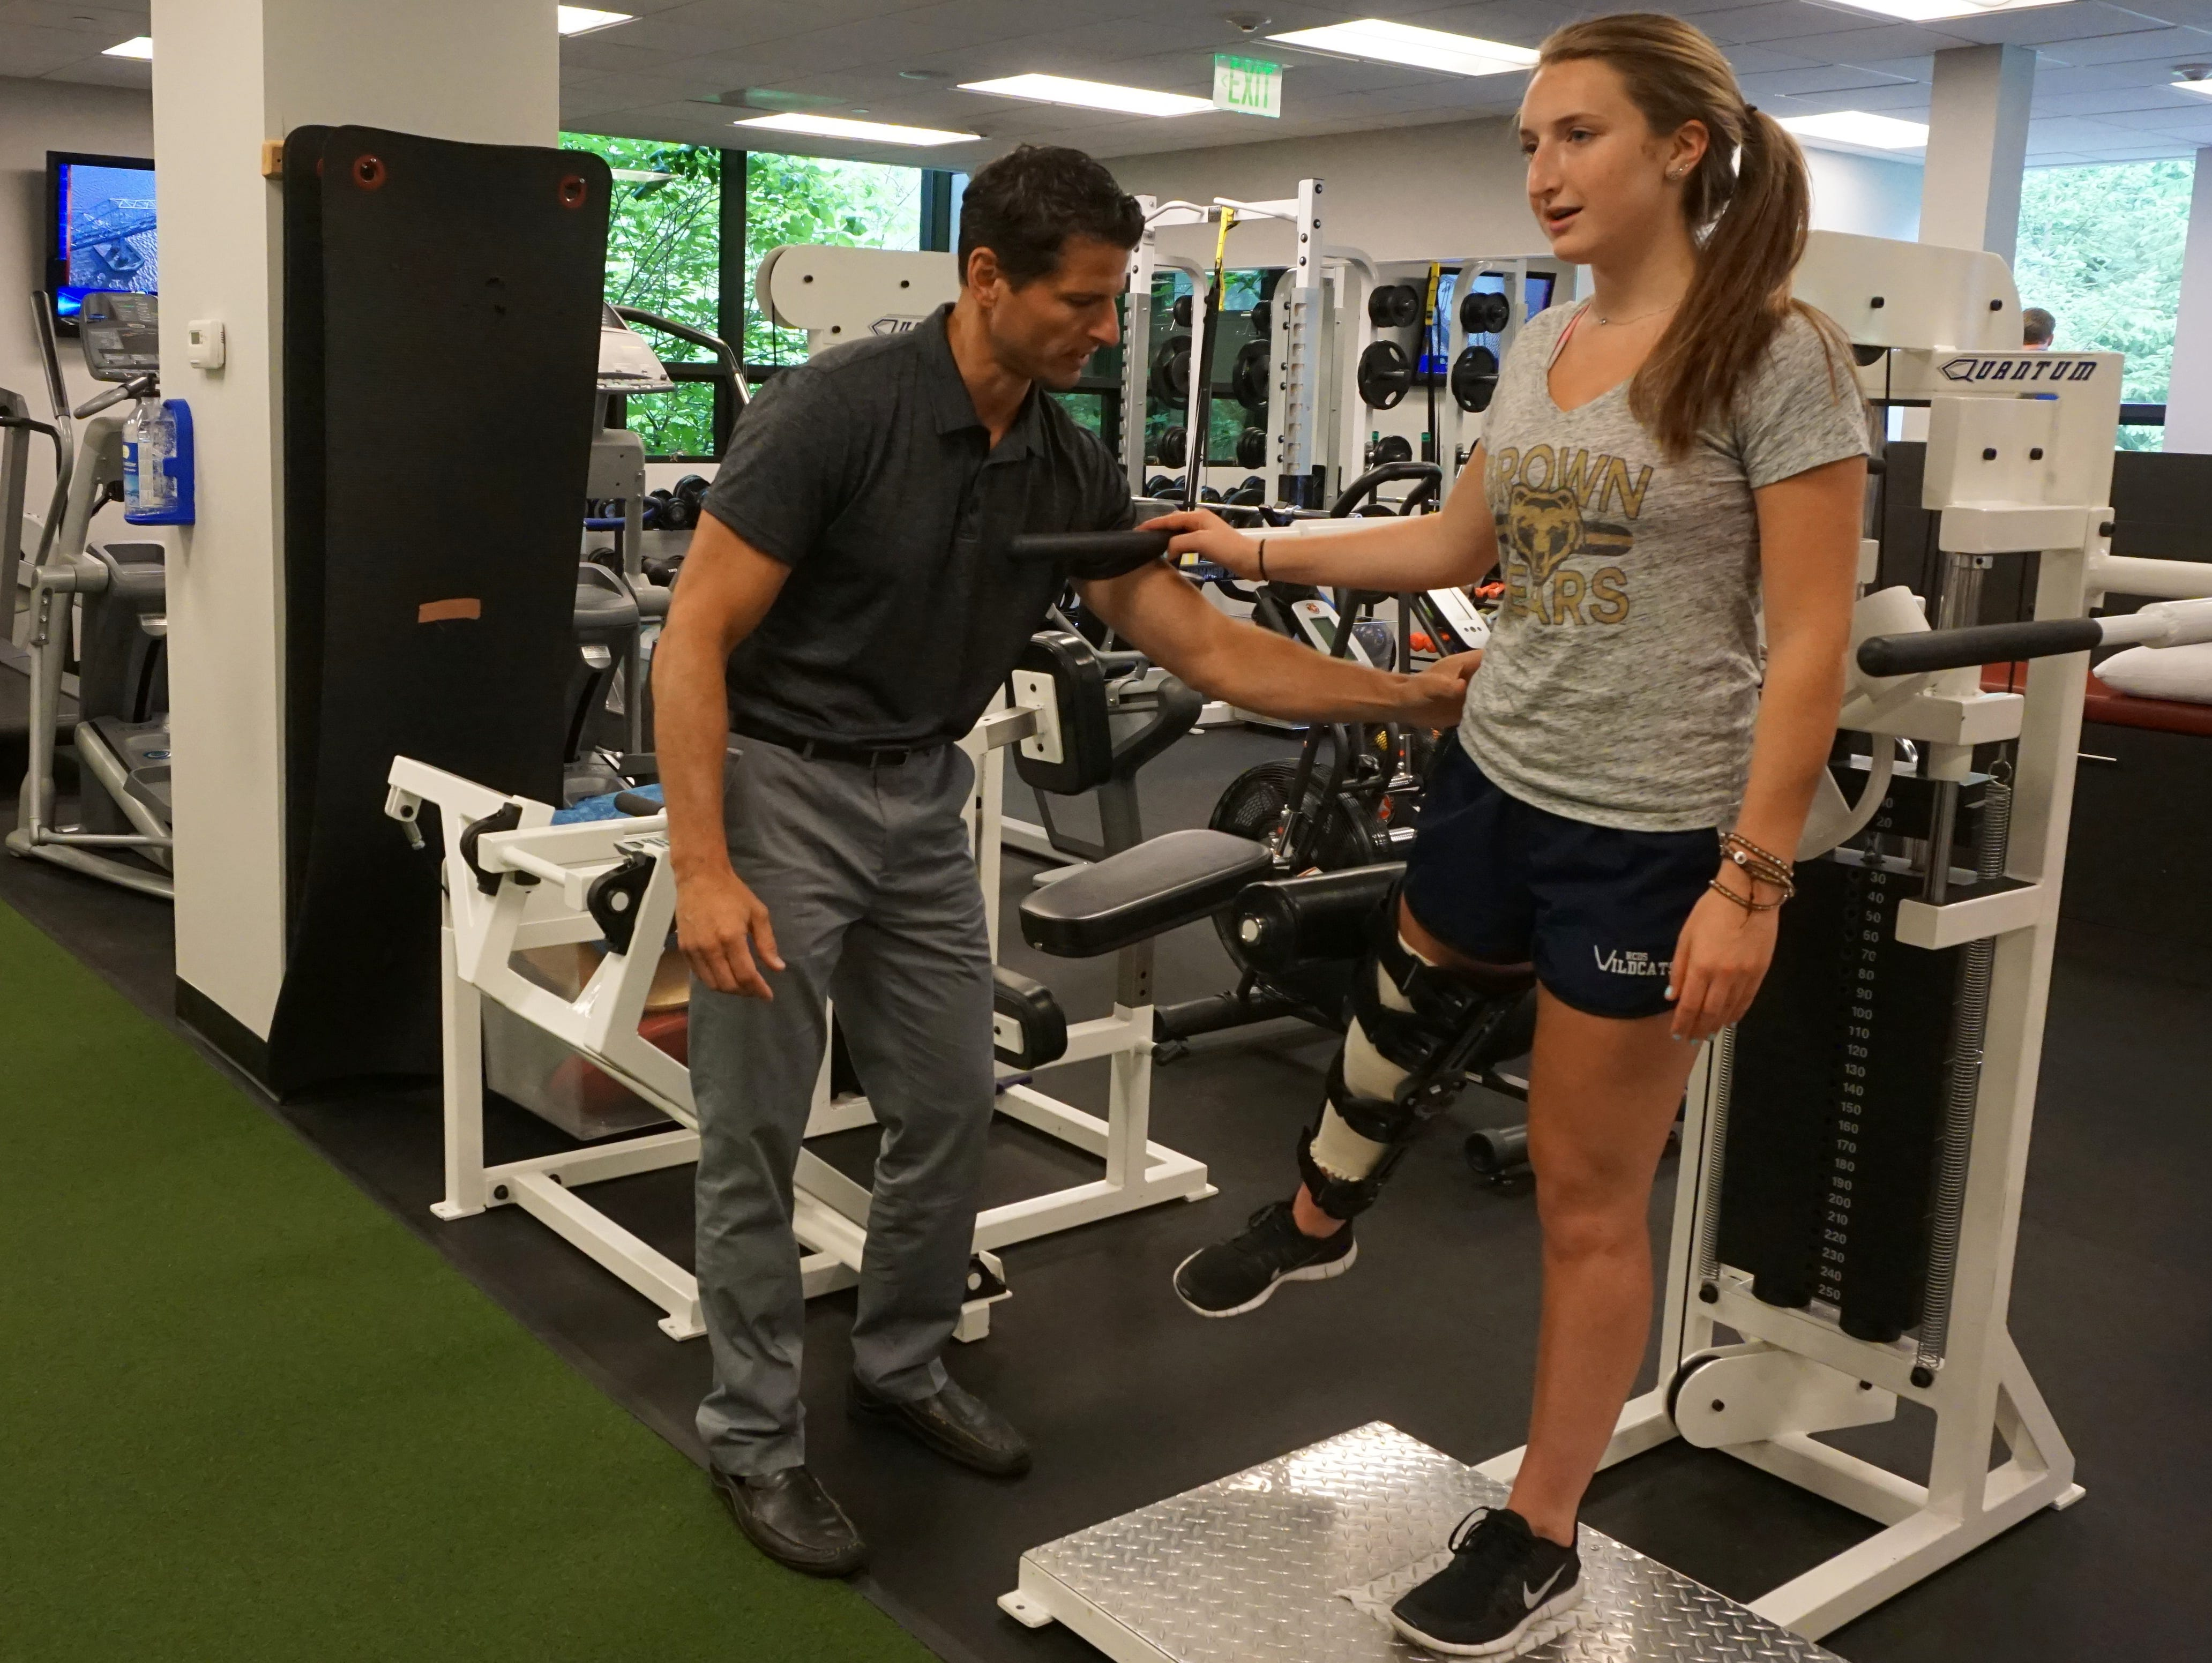 Robert Fay works with Maddy Cooper at his physical therapy practice.